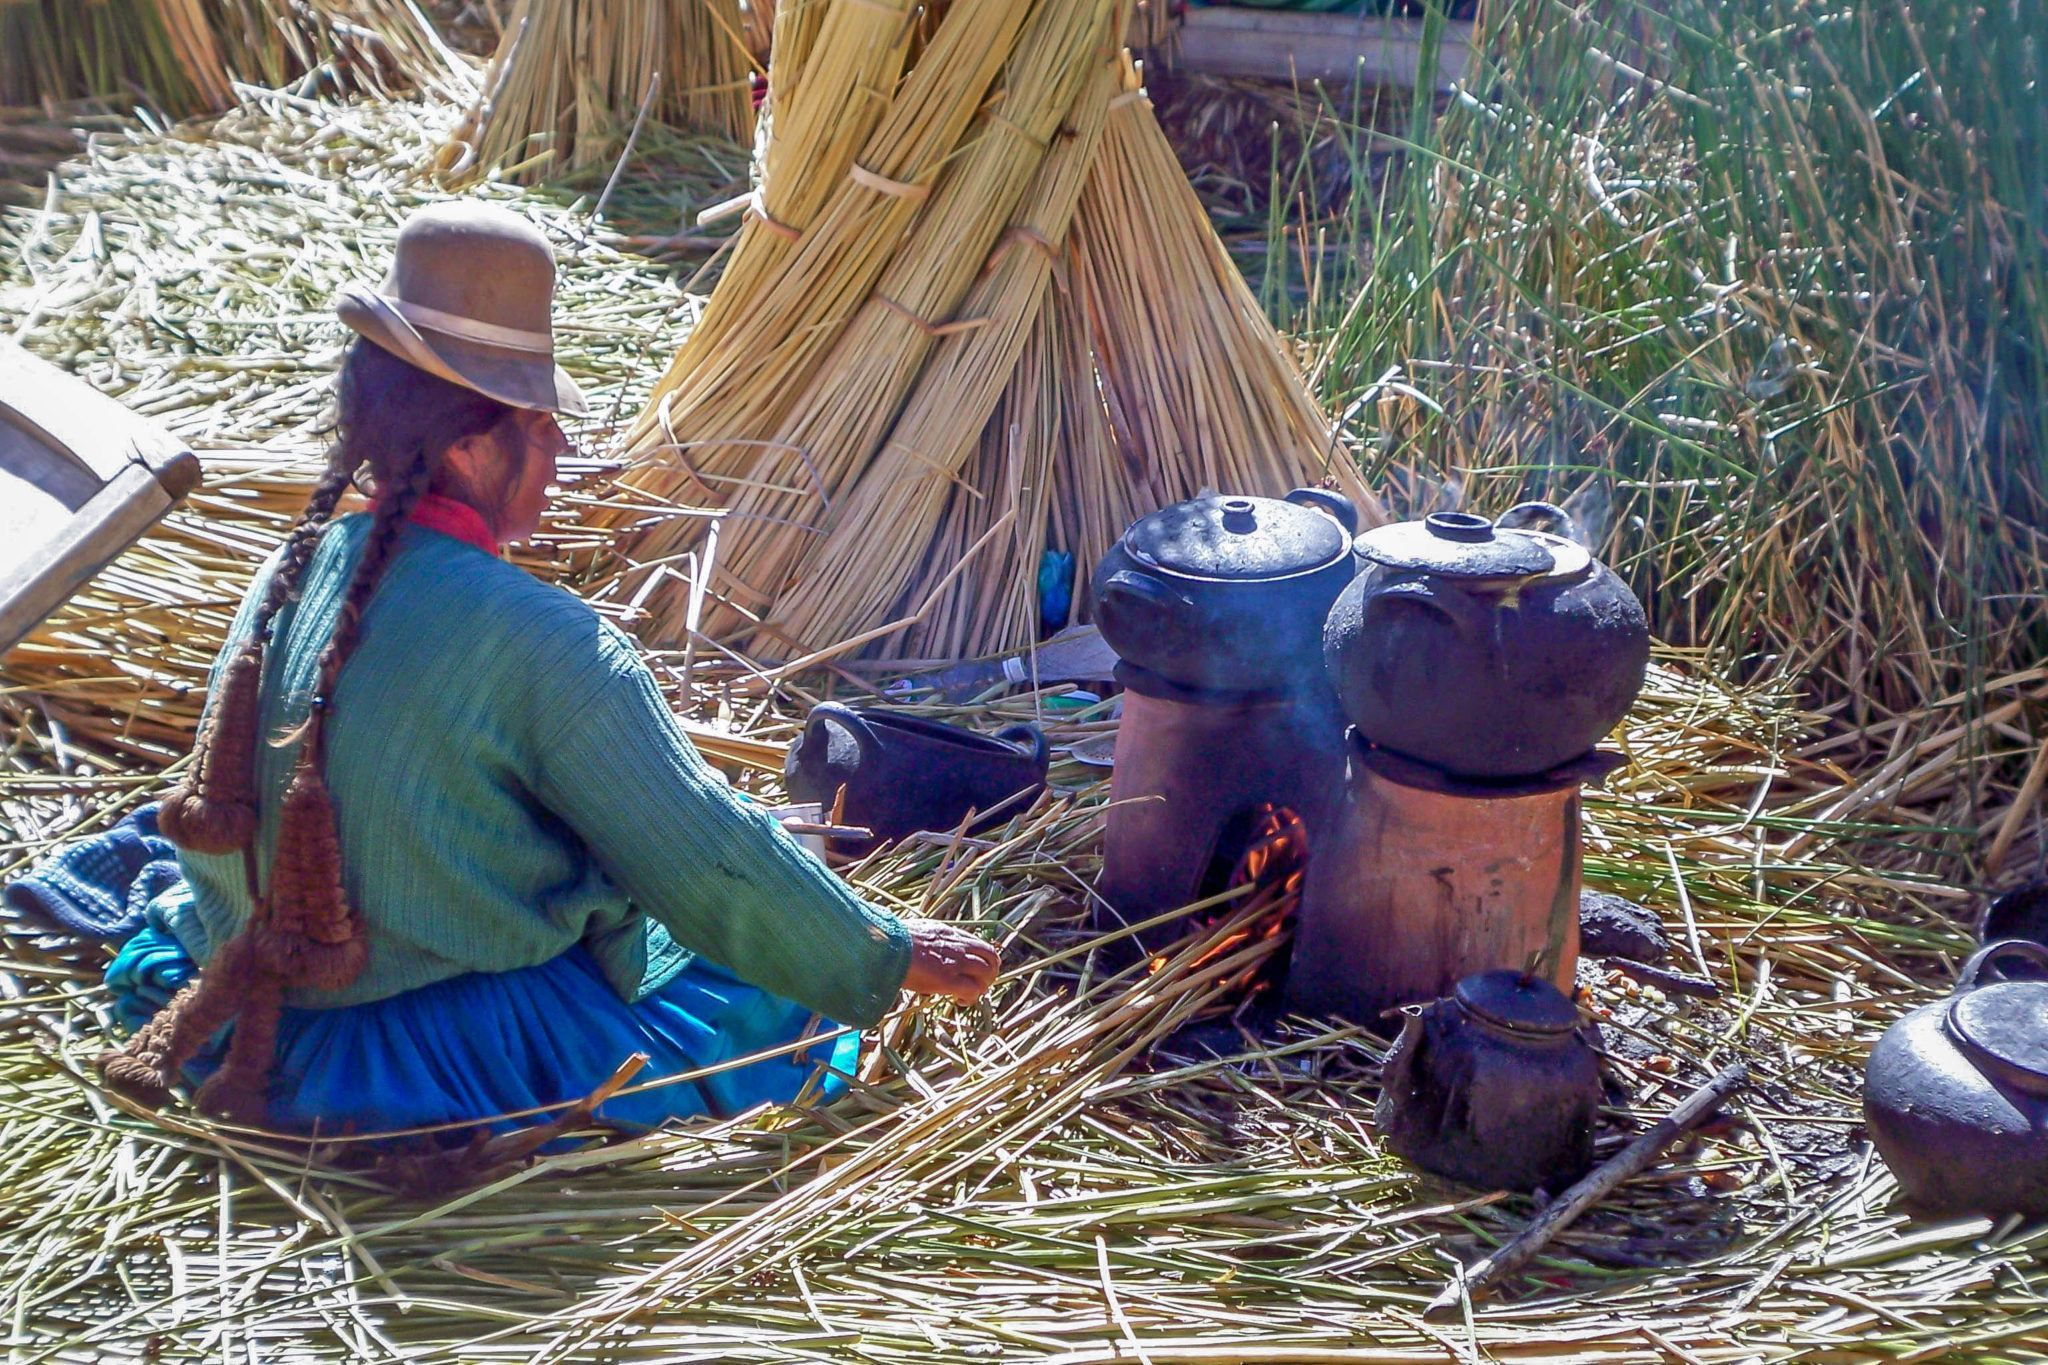 A women tending a cooking fire on the Uros Islands in Peru